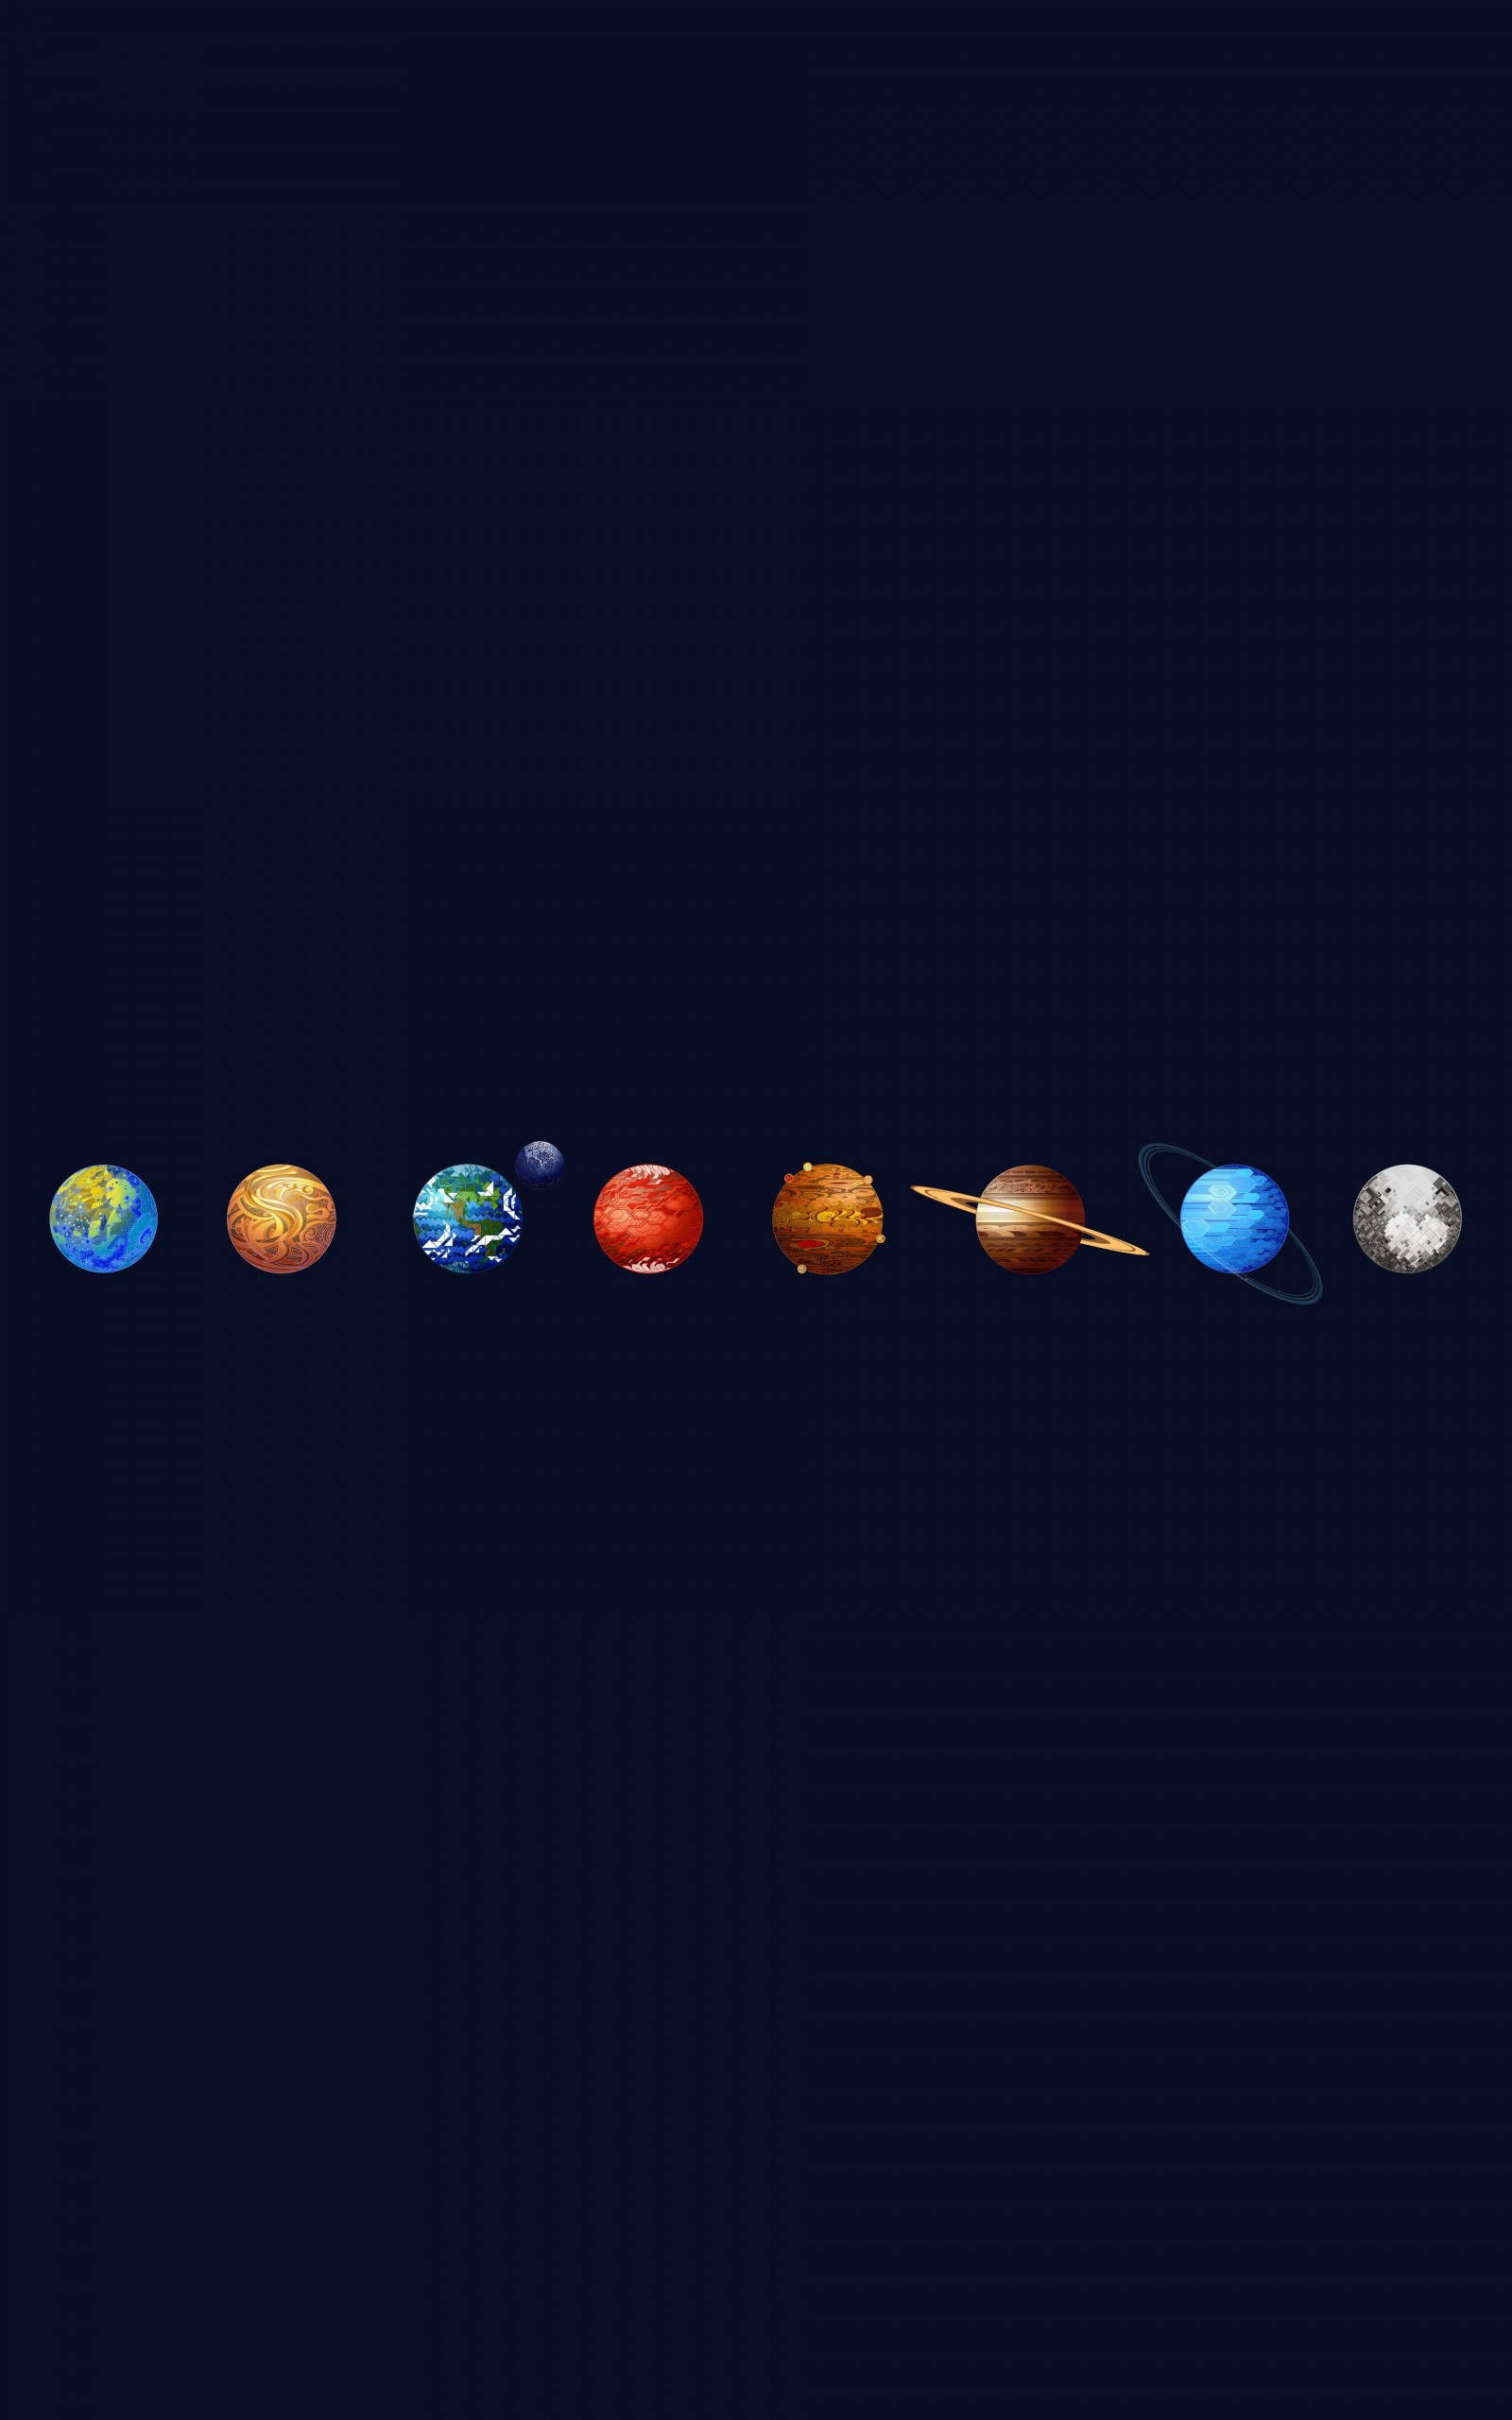 Solar System Wallpaper for Amazon Kindle Fire HDX 8.9